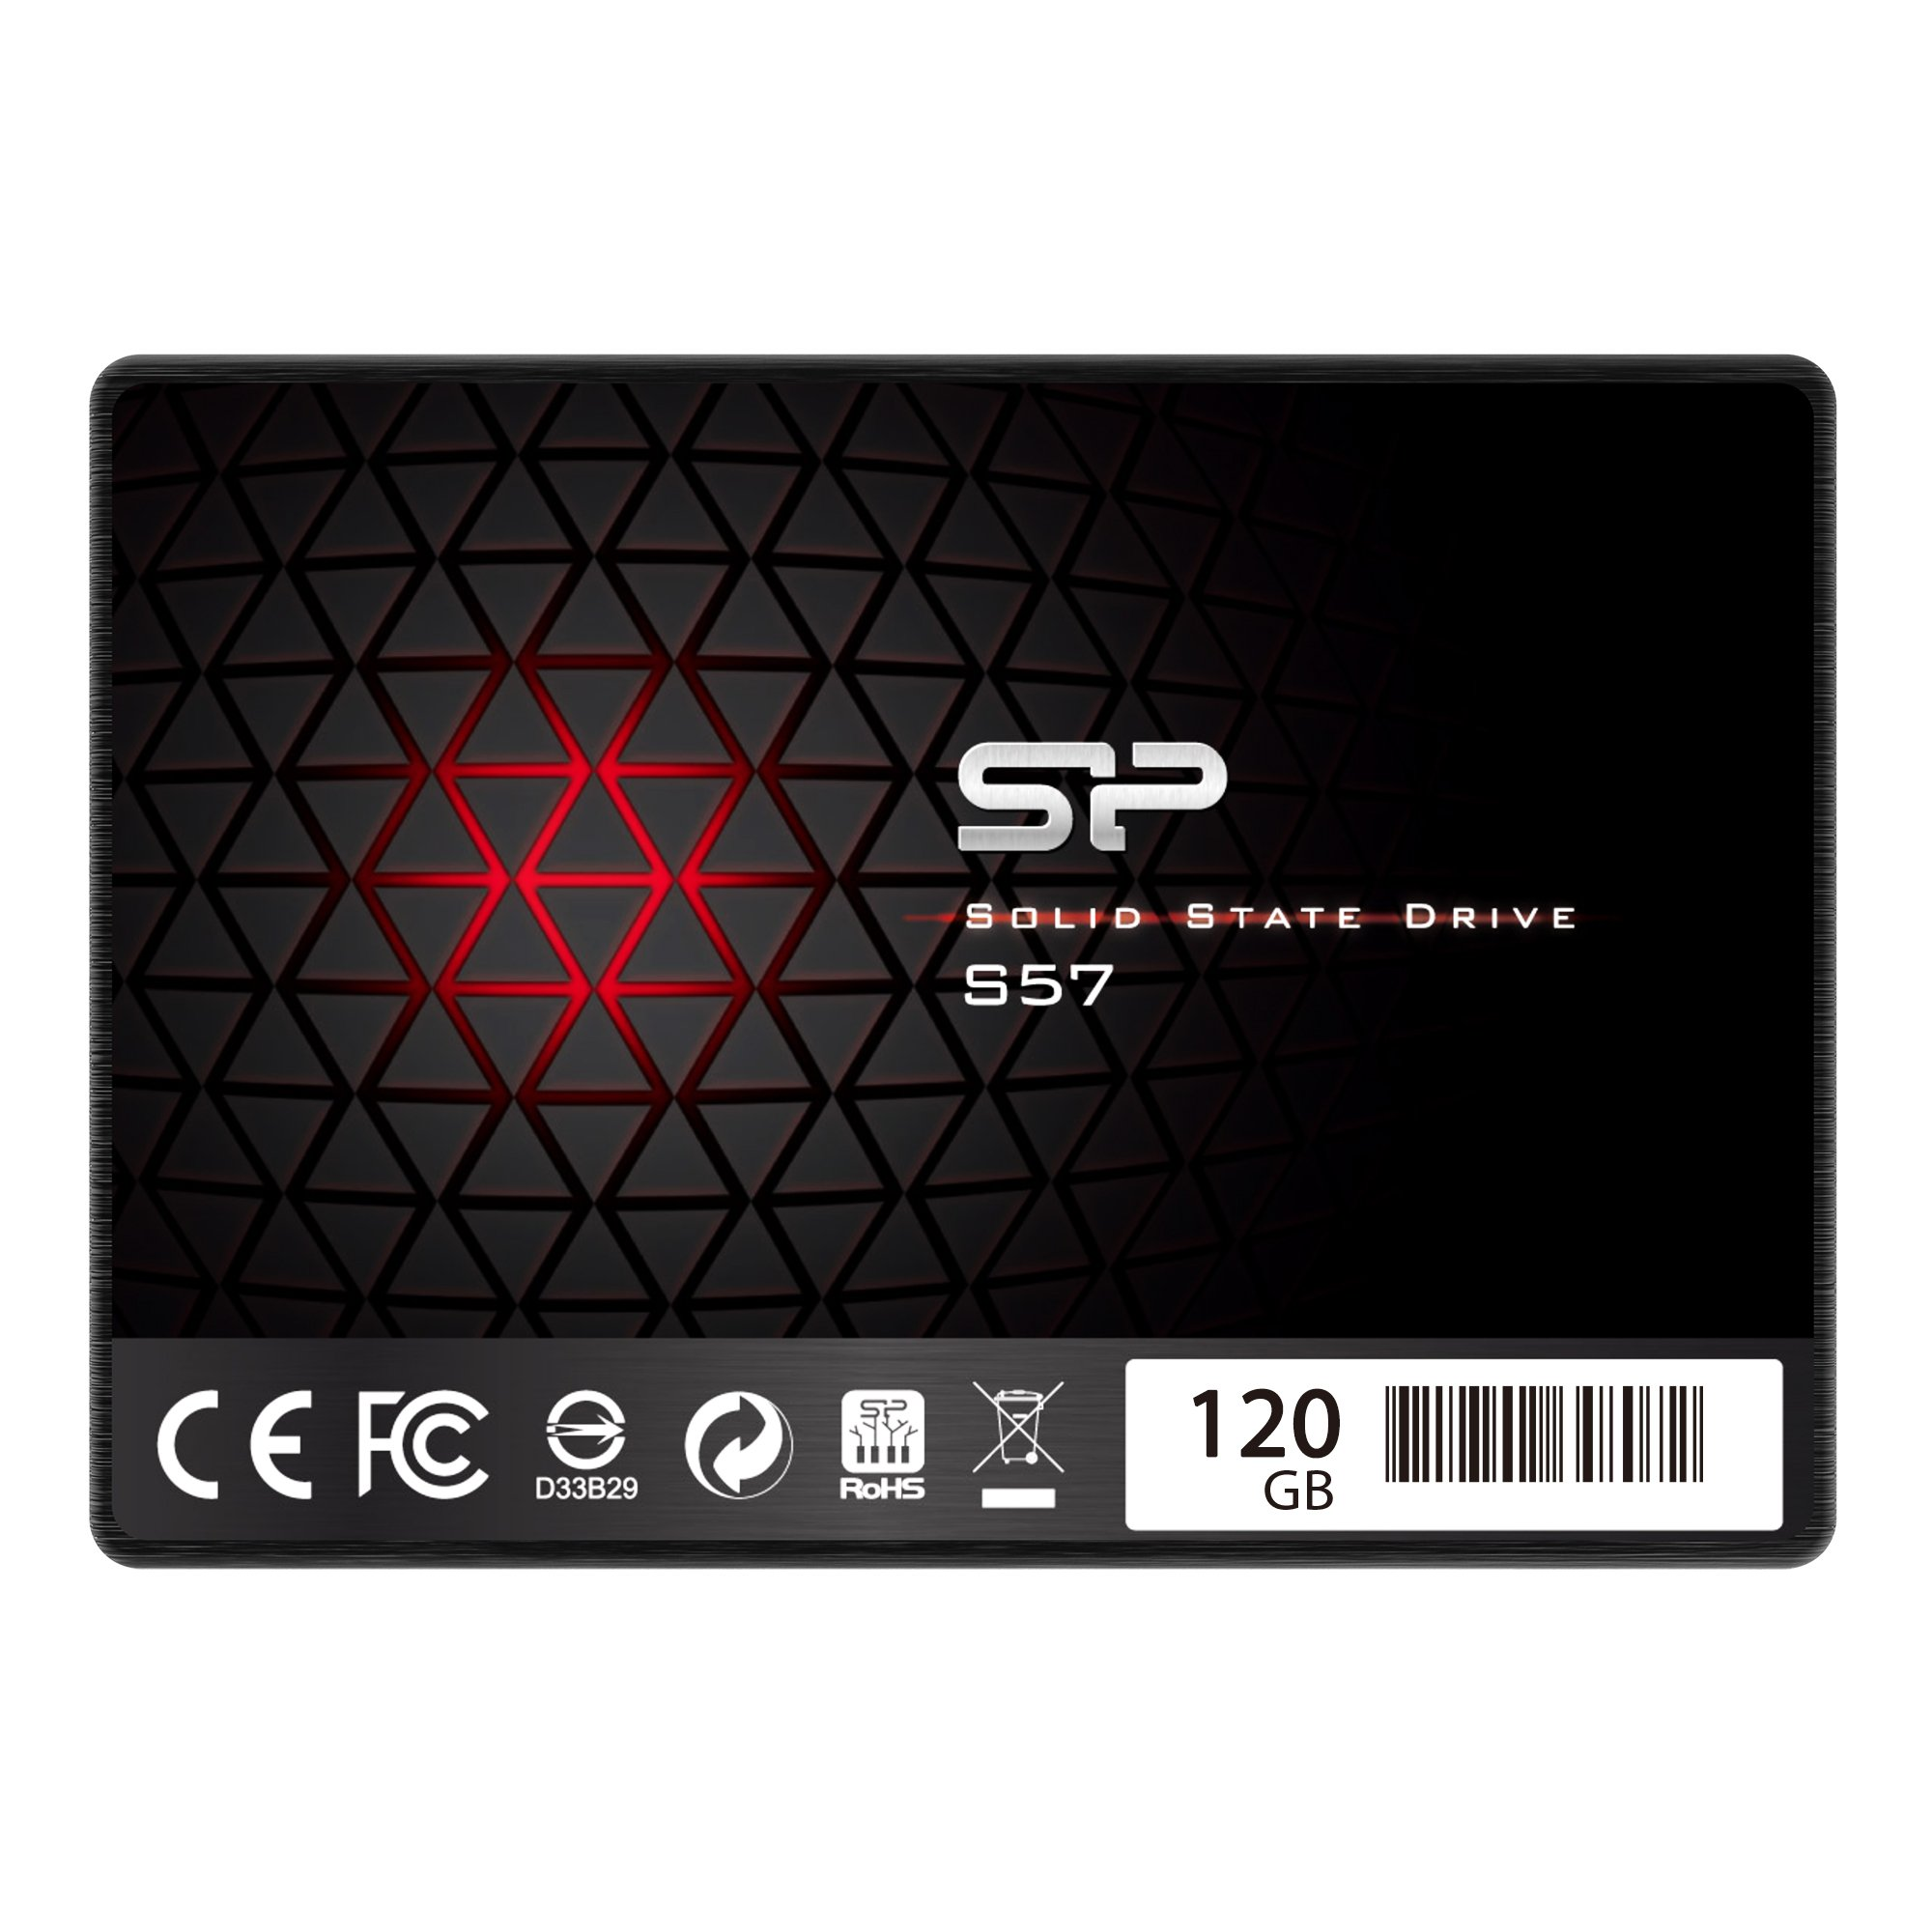 SSD : Silicon Power/Marvell Controller 120GB S57 (SLC Cache.